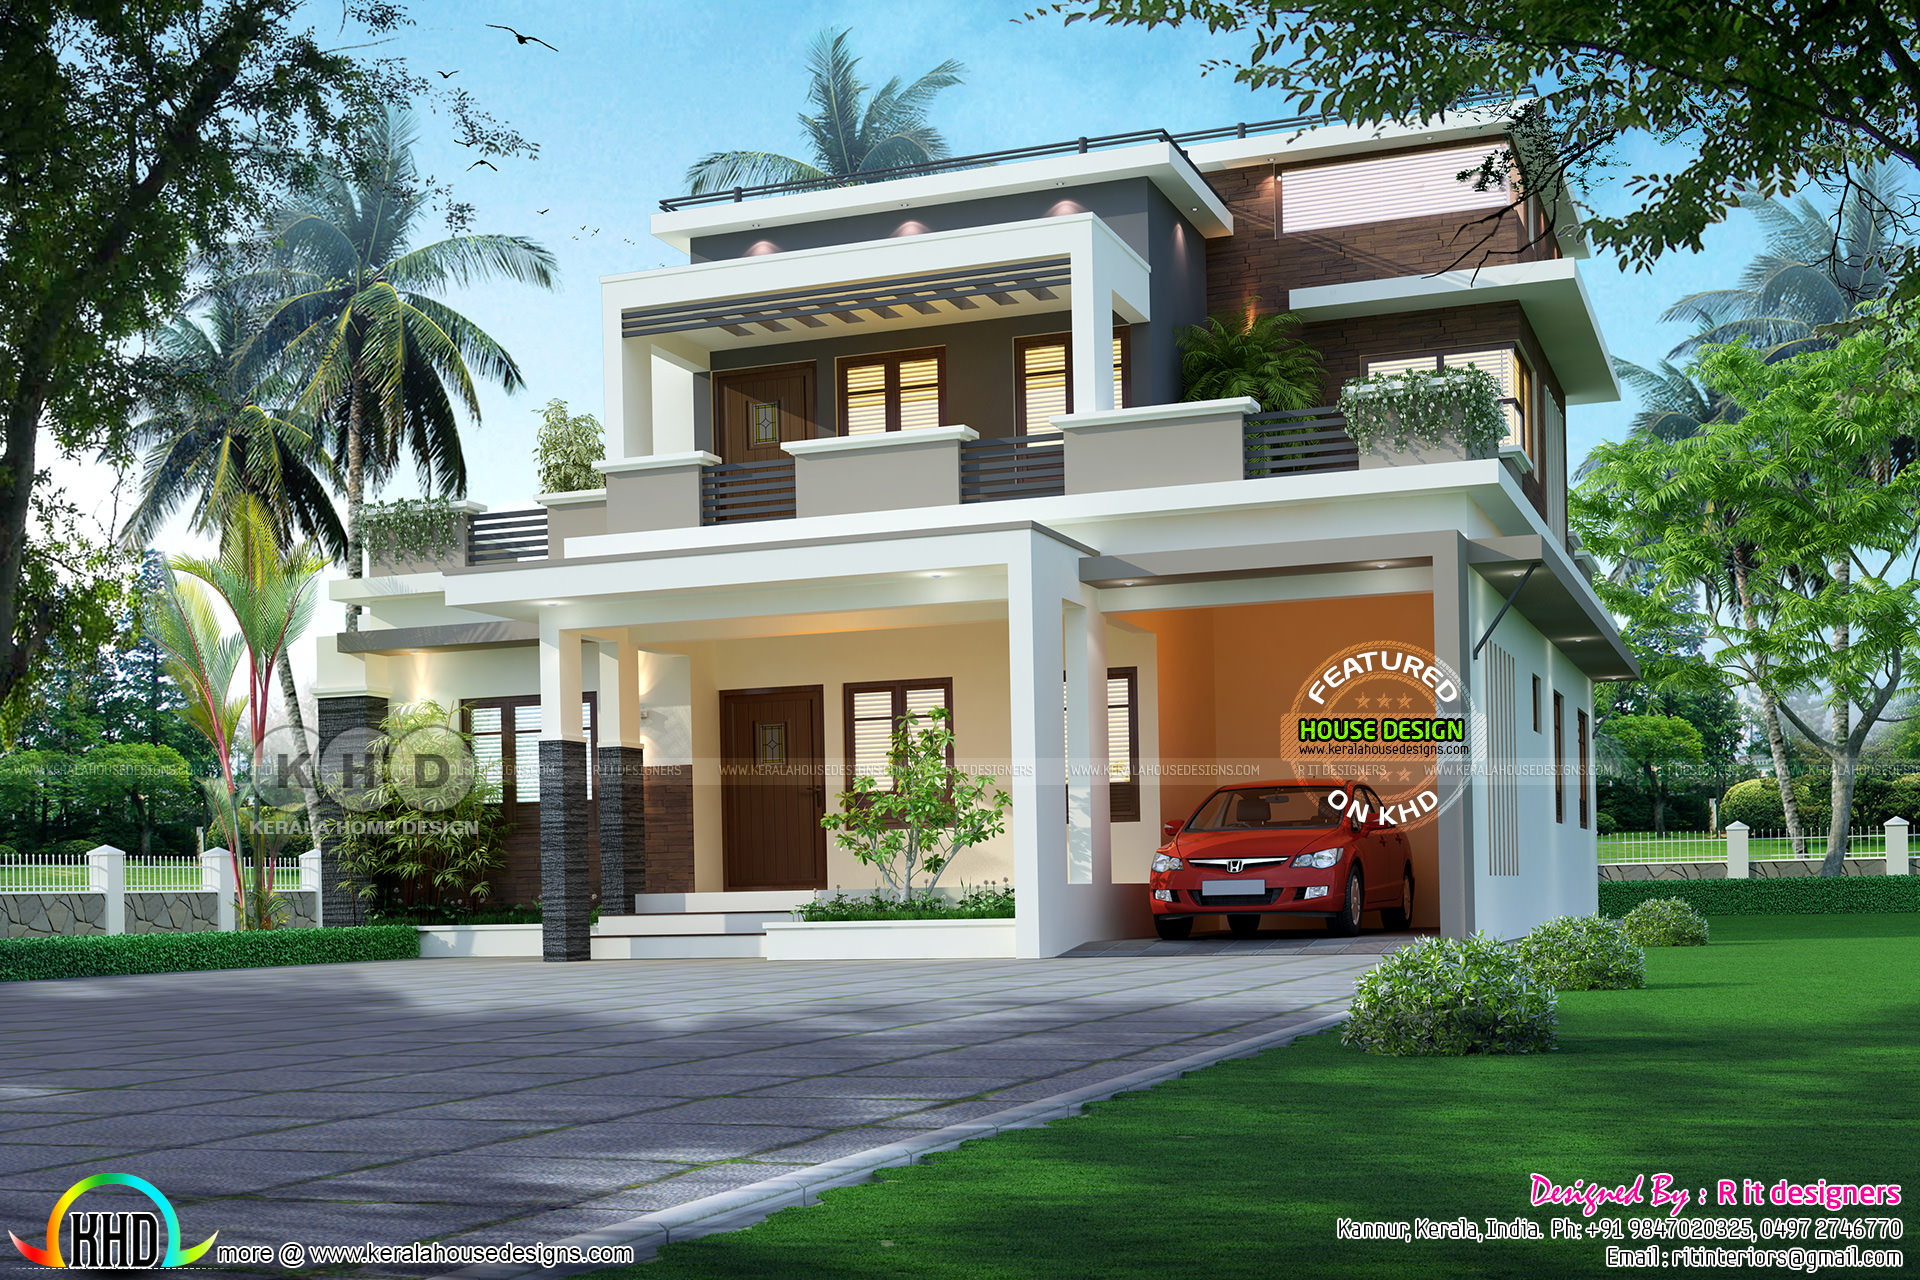 52 lakhs cost estimated contemporary style house plan for House plans with estimated cost to build in kerala